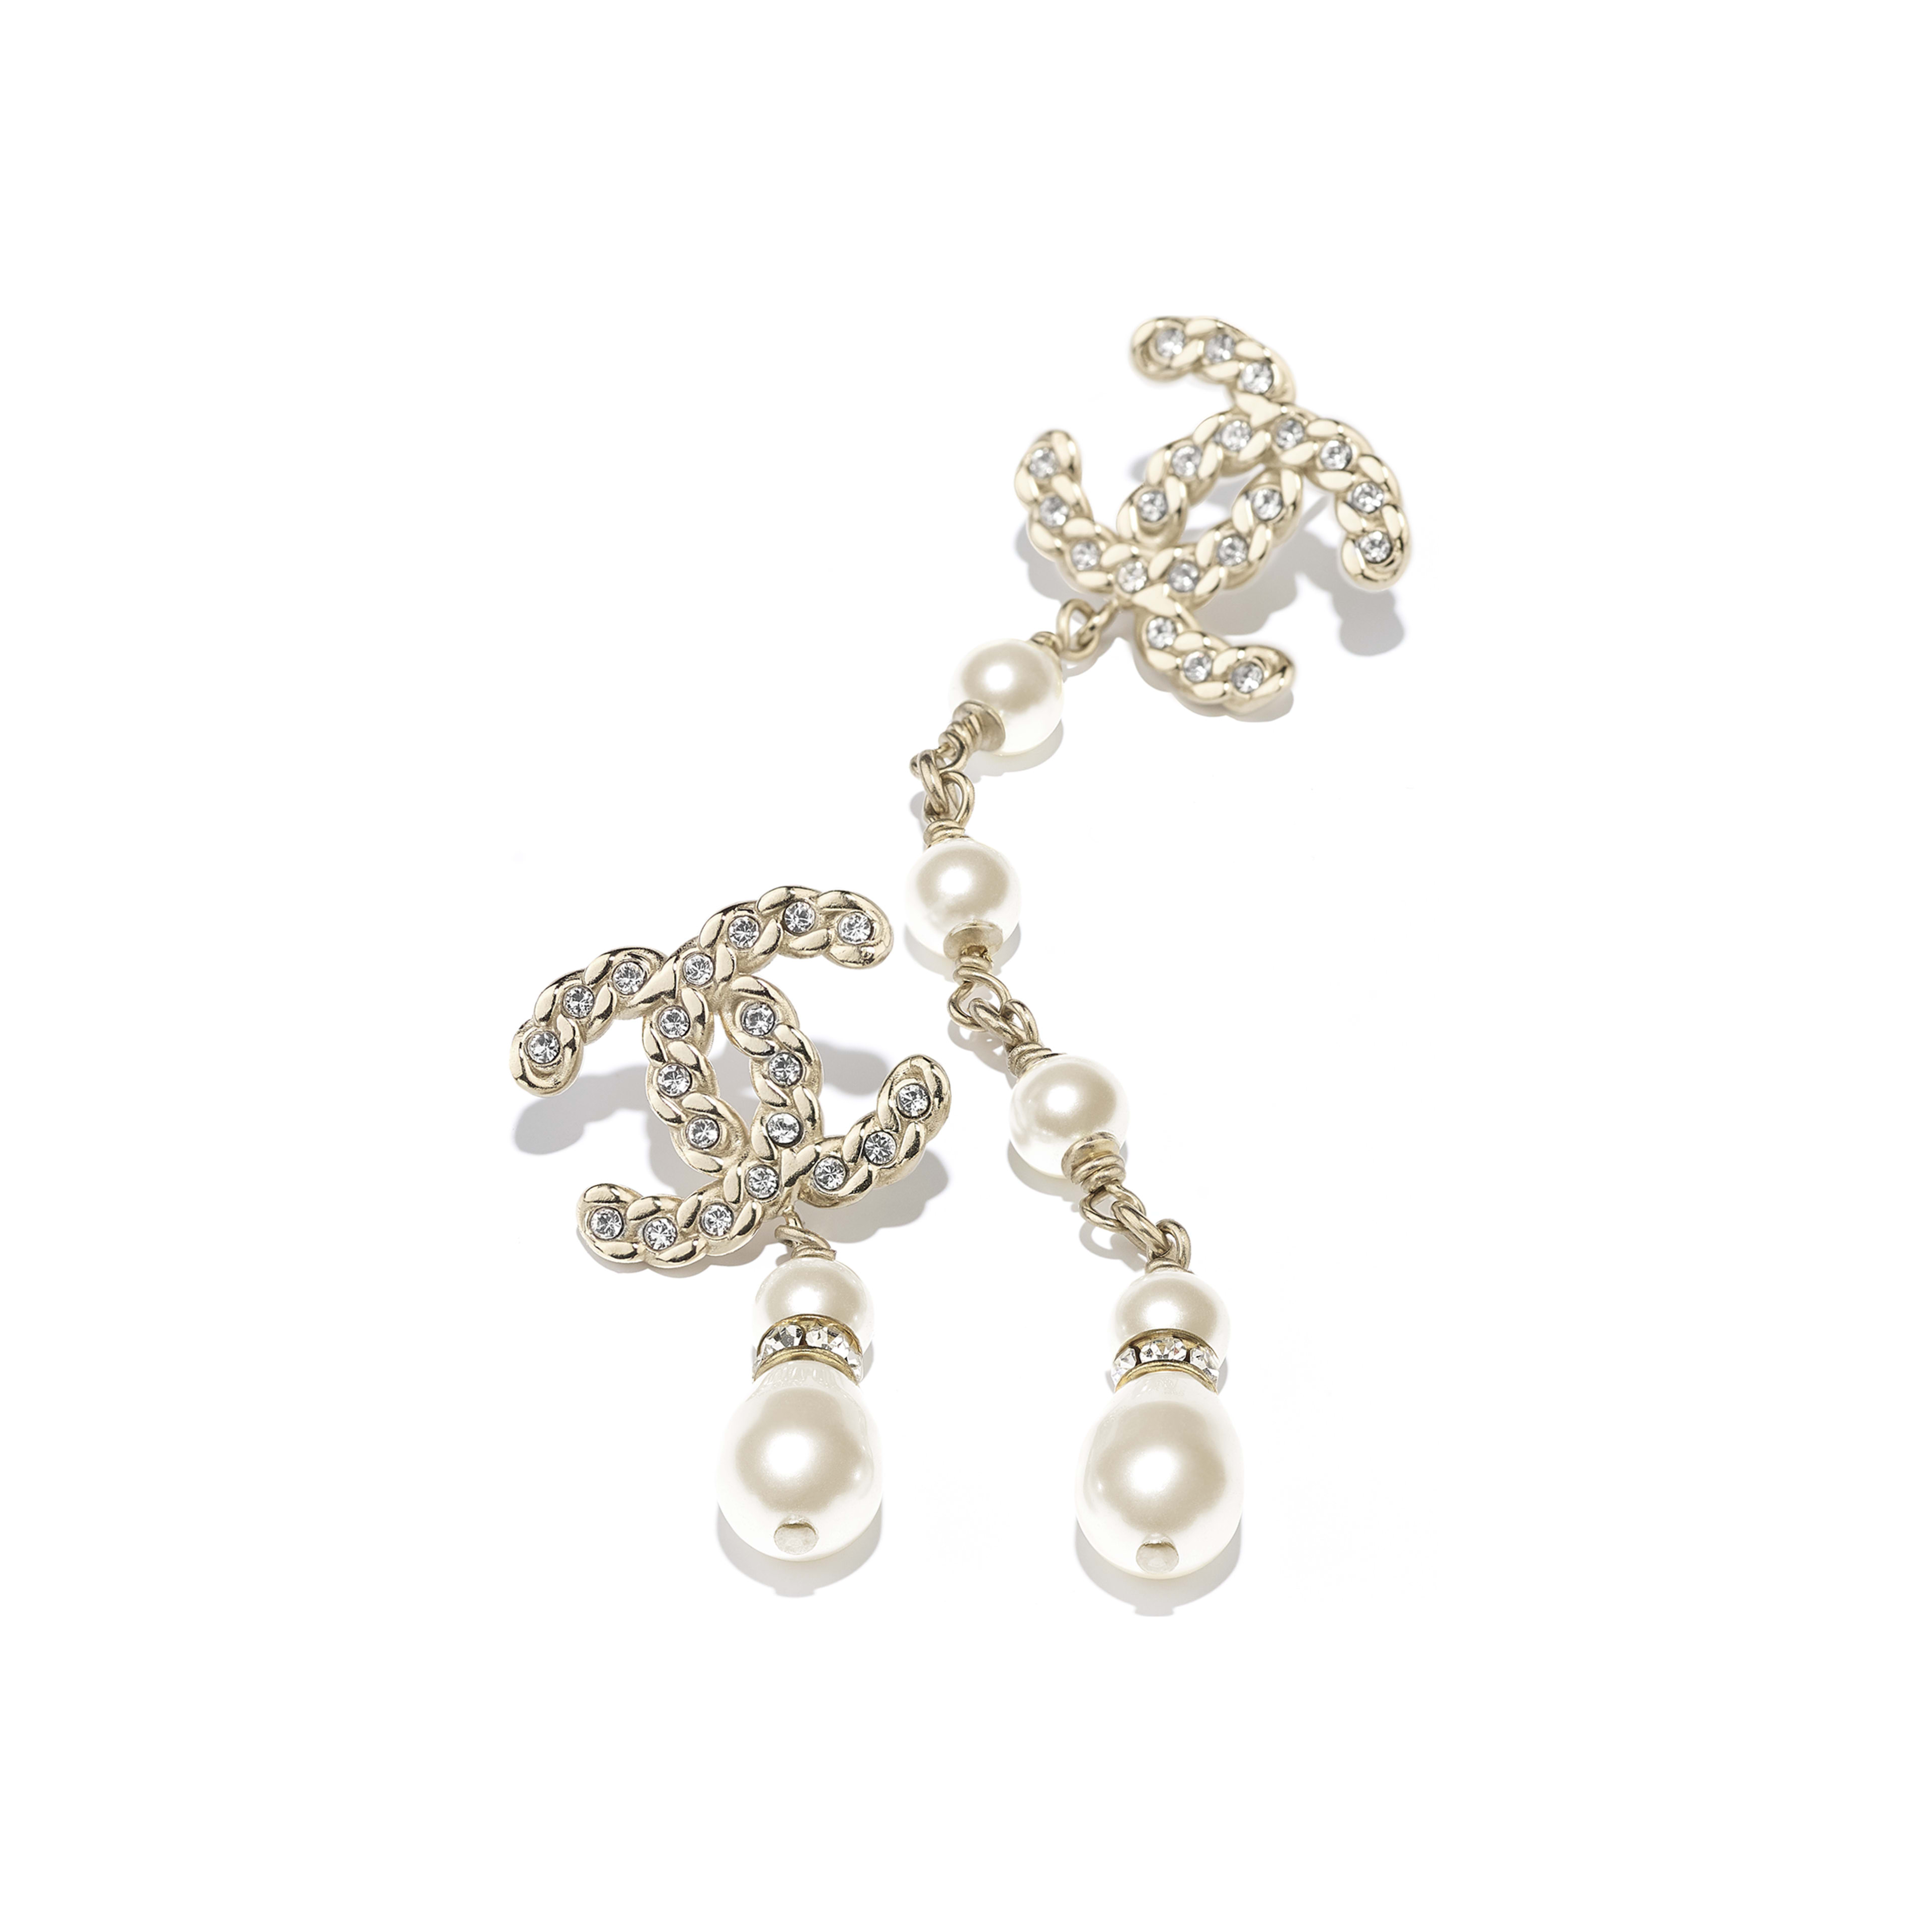 Earrings - Gold, Pearly White & Crystal - Metal, Glass Pearls & Strass - Alternative view - see full sized version